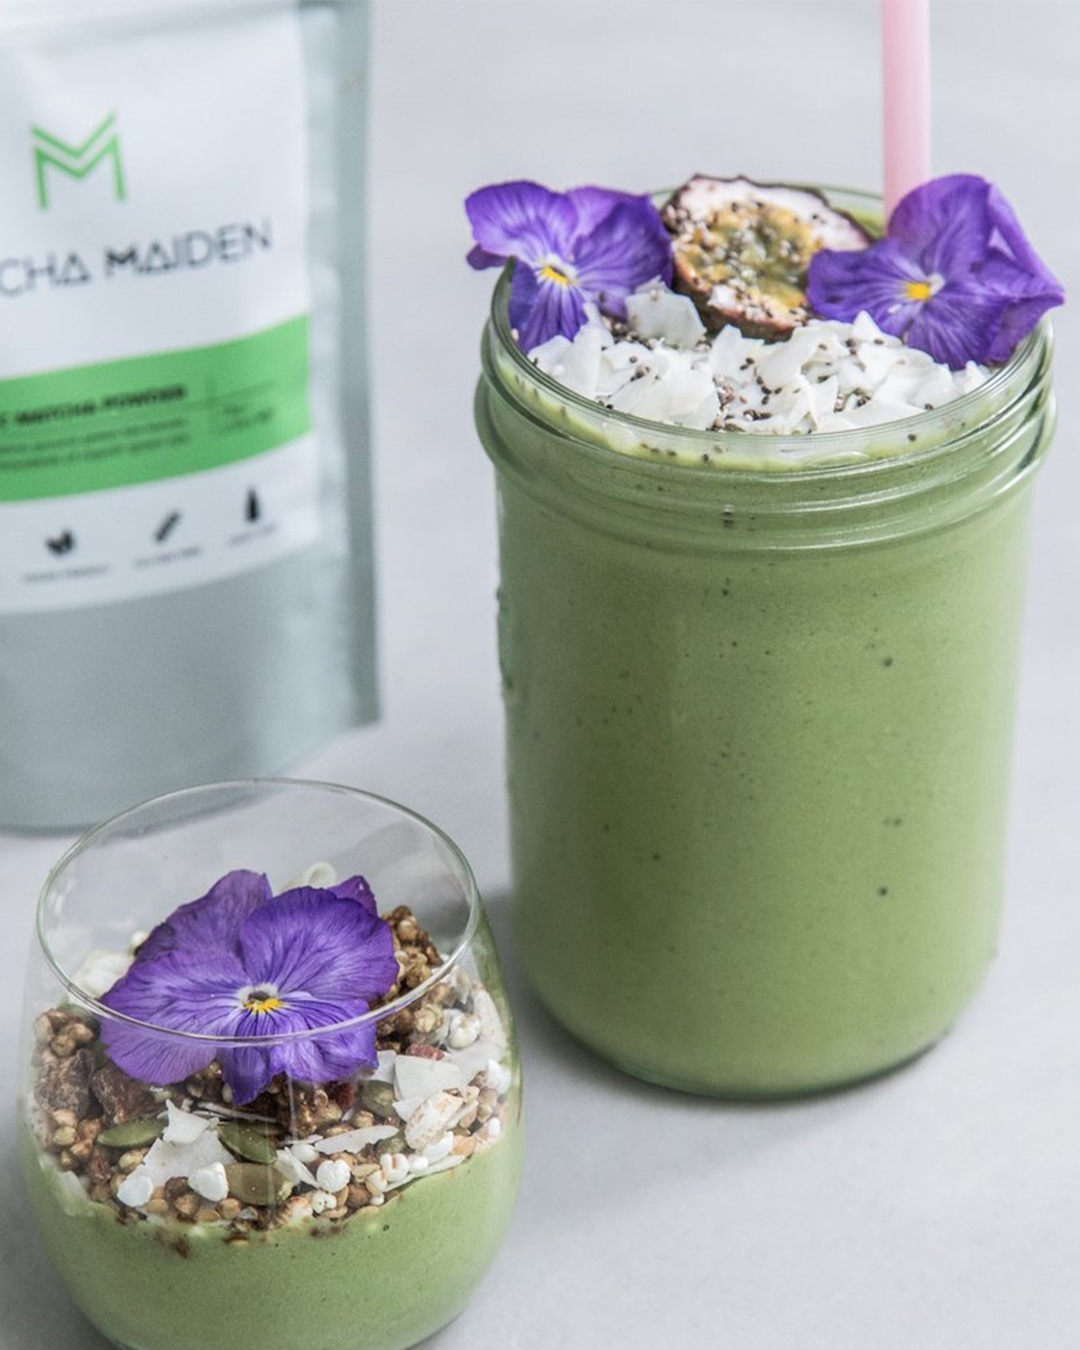 Matcha Maiden pouch with two matcha smoothies